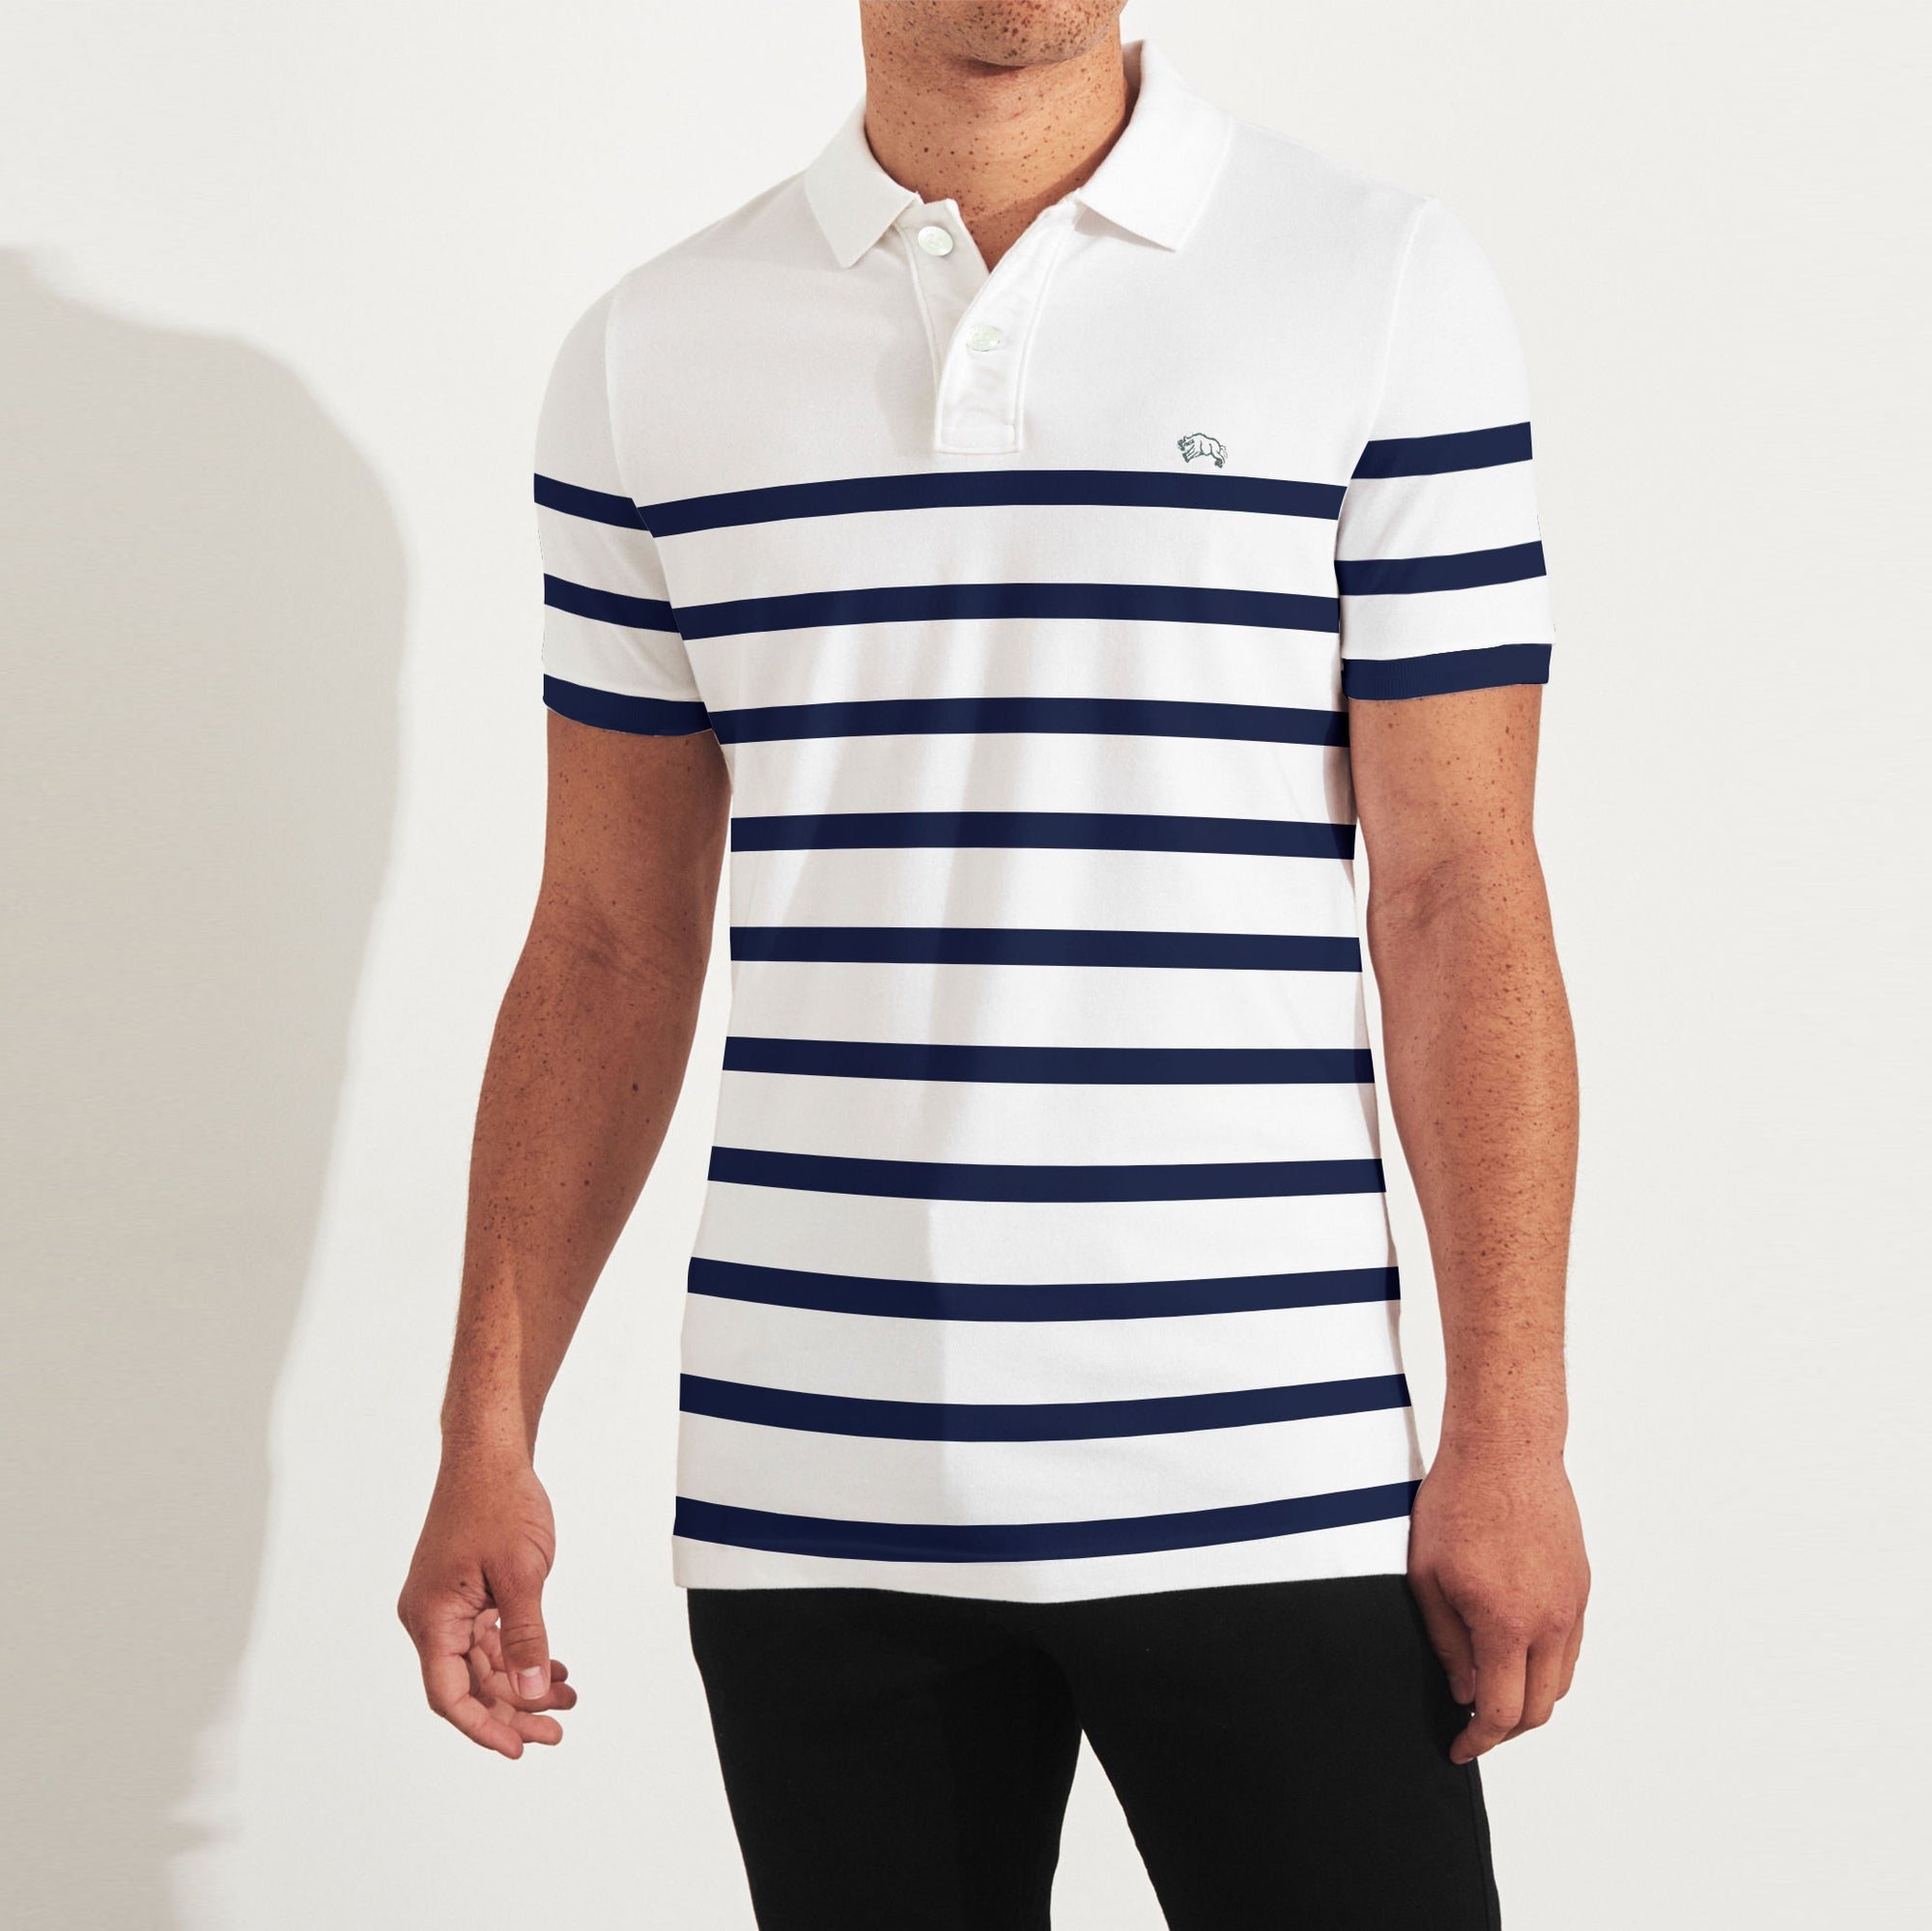 American Rag Short Sleeve Single Jersey Polo Shirt For Men White With Dark Navy Stripe Sp032